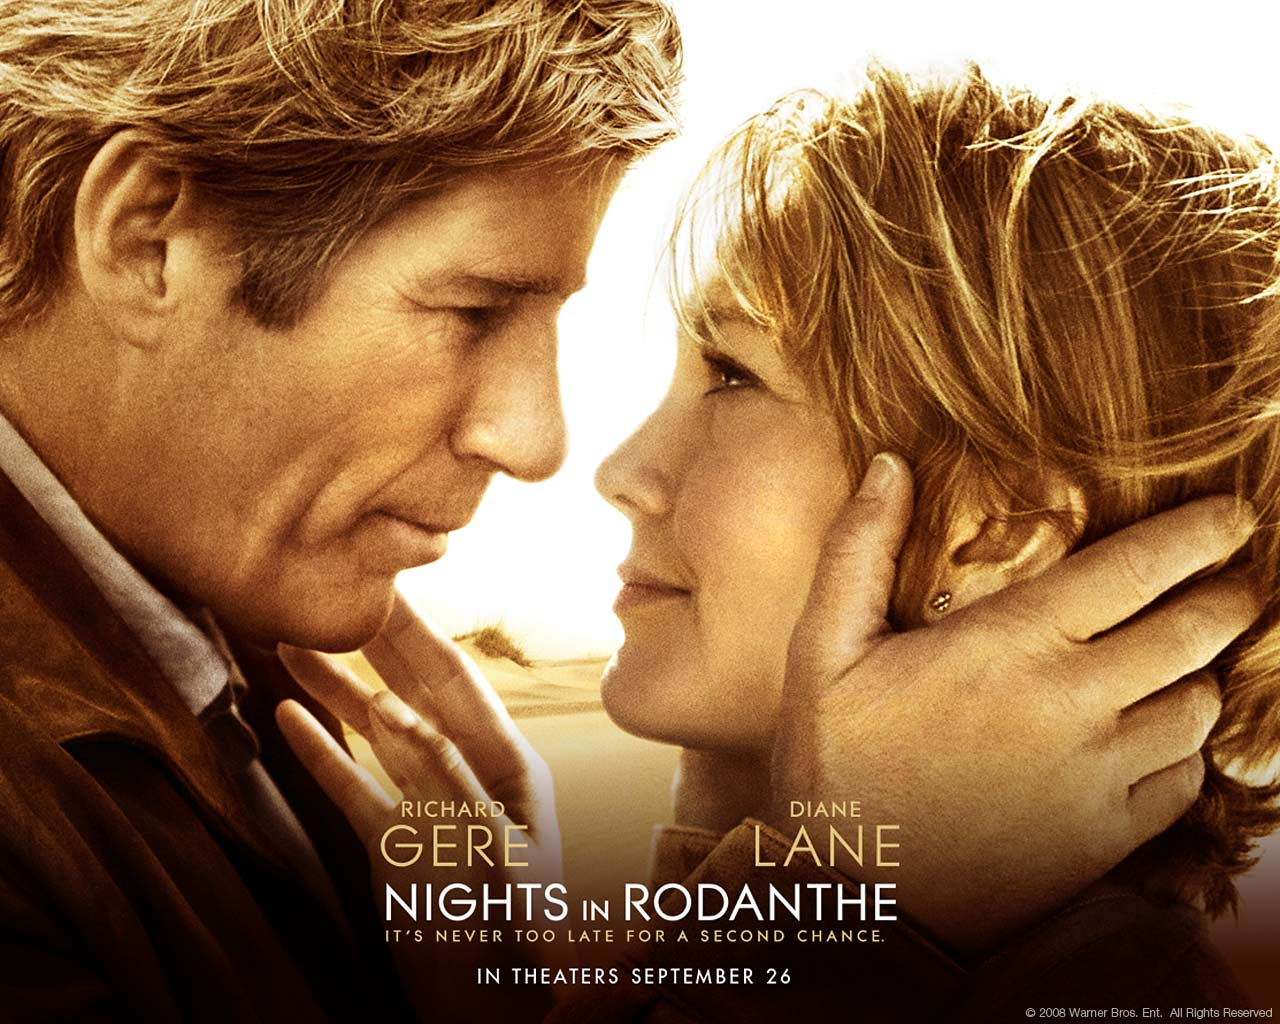 http://4.bp.blogspot.com/-KfSYrP8_t_0/TXOILrAcYkI/AAAAAAAAAaM/4y7hcEjx5yU/s1600/Richard_Gere_in_Nights_in_Rodanthe_Wallpaper_1_800.jpg